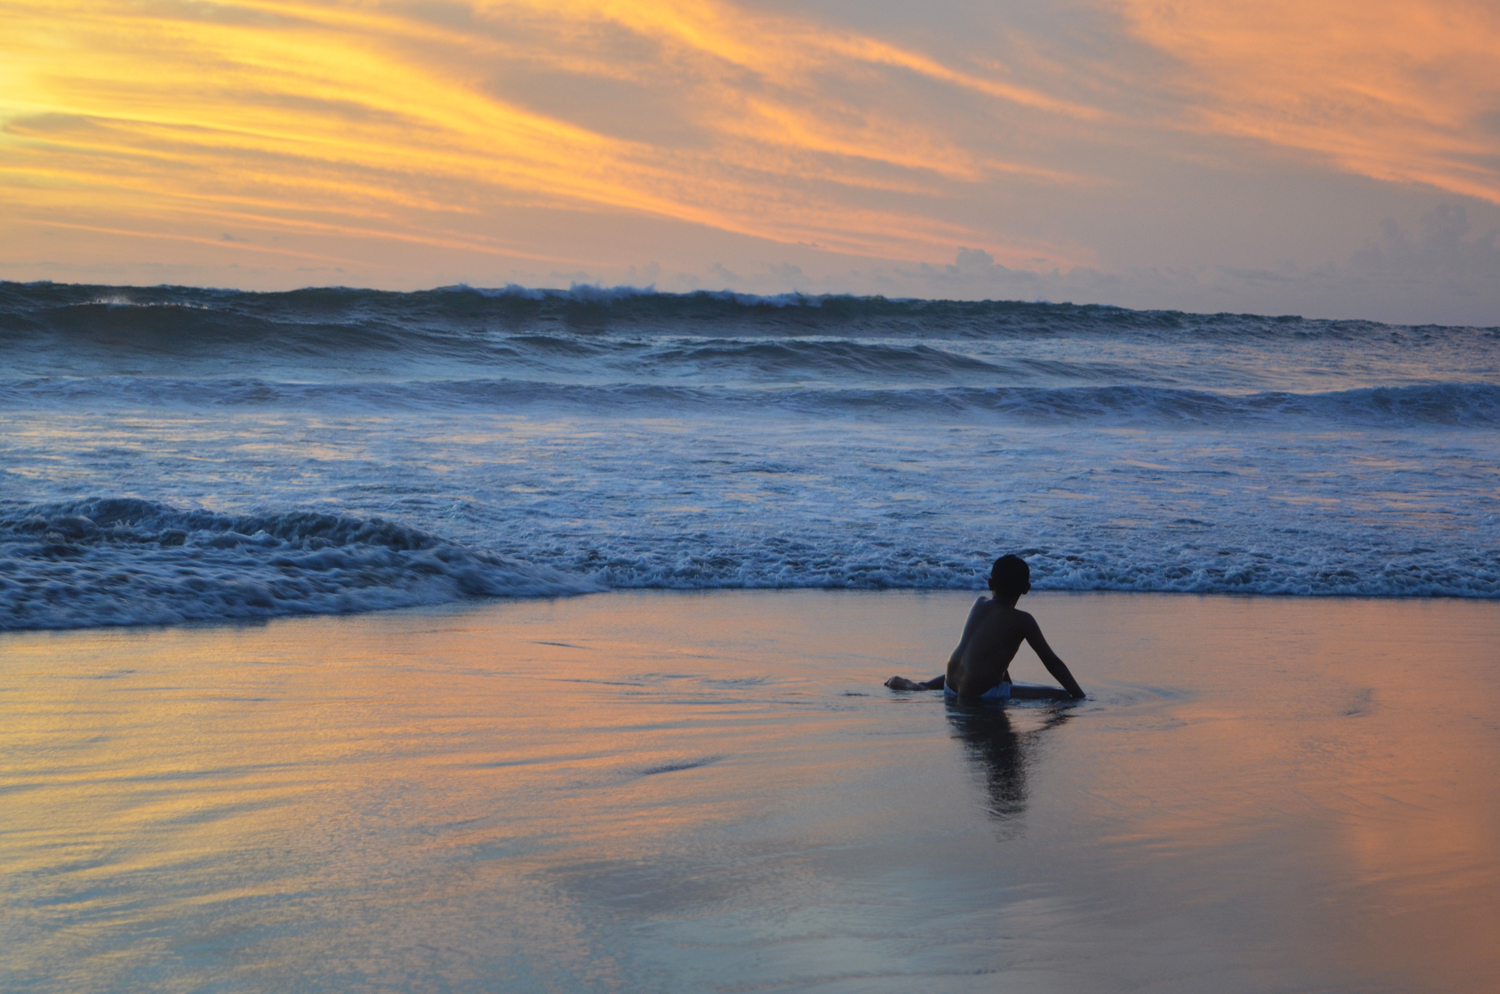 Beautiful sunsets in Seminyak. The beach has dark sand and huge waves excellent for surfing!